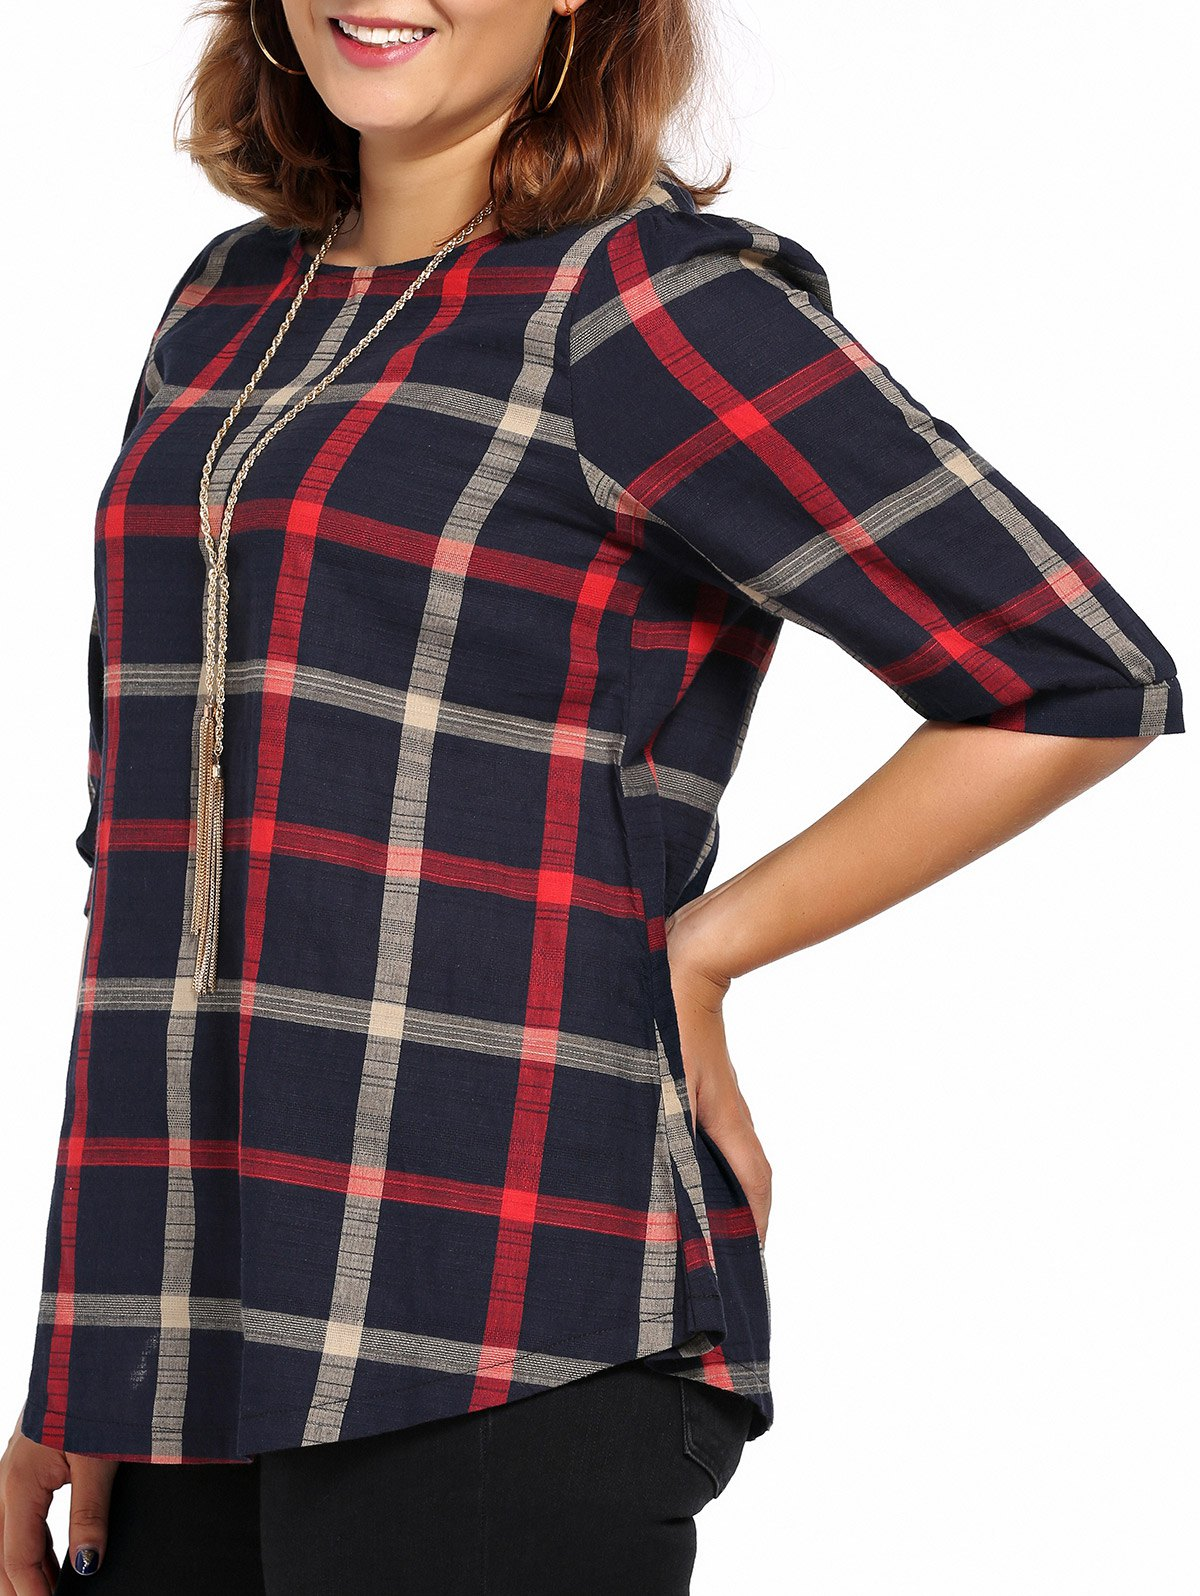 Sale Chic Plus Size Plaid Print High-Low Hem Women's Blouse